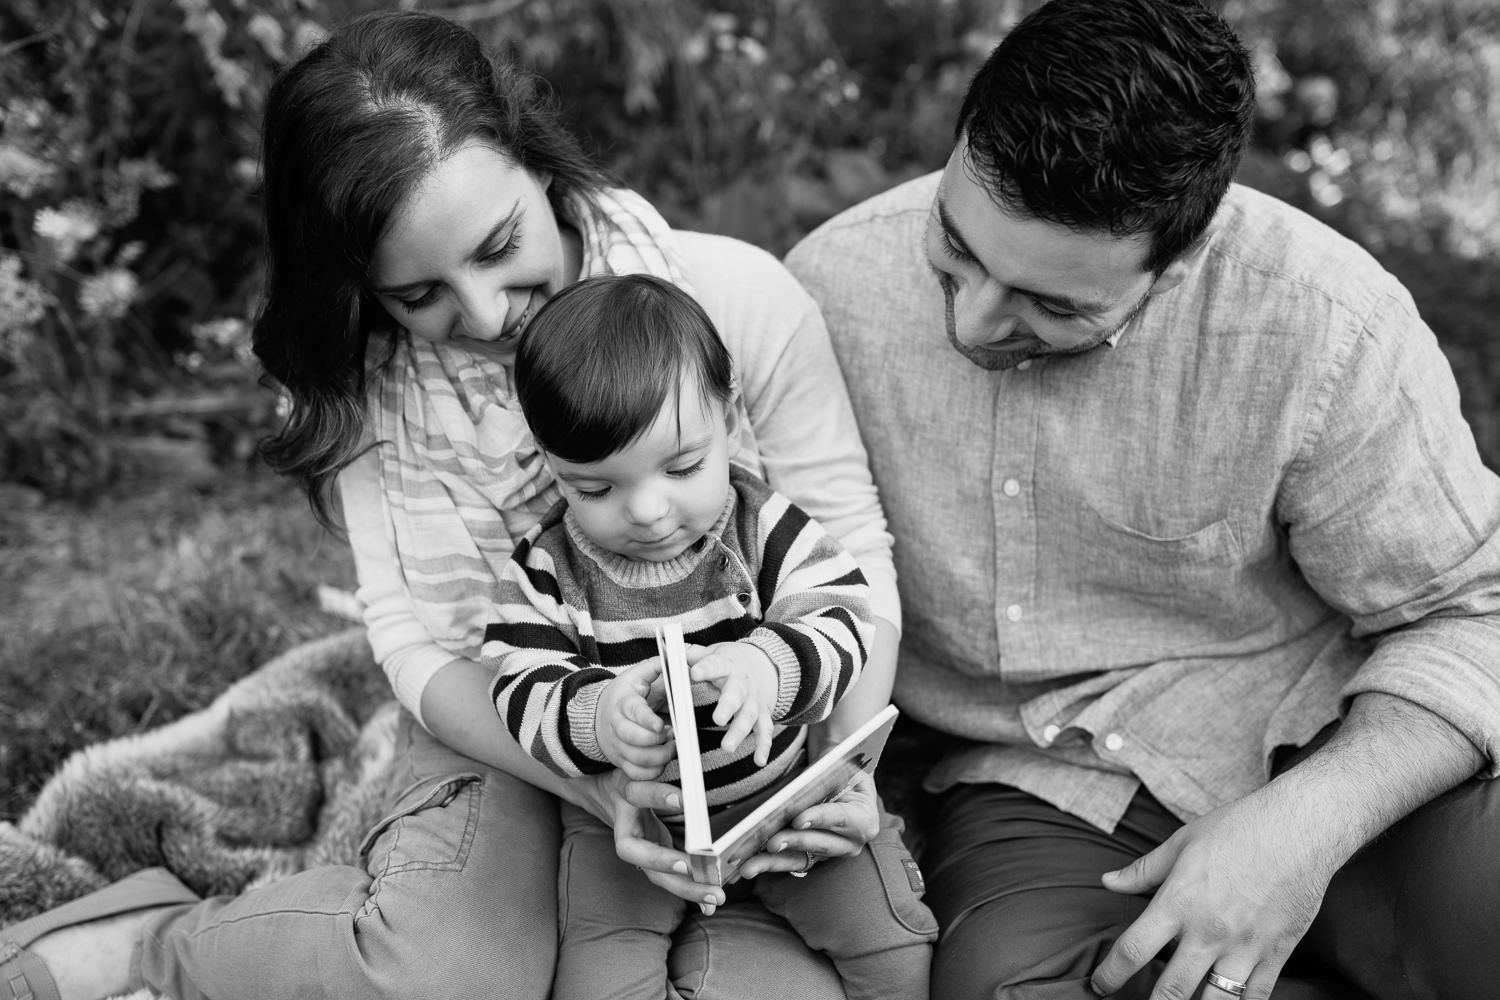 Markham Lifestyle Photographyfamily of 3 sitting on fur blanket under willow tree at sunset, 1 year old baby boy sitting on mom's lap reading story, dad next to them smiling down at son -